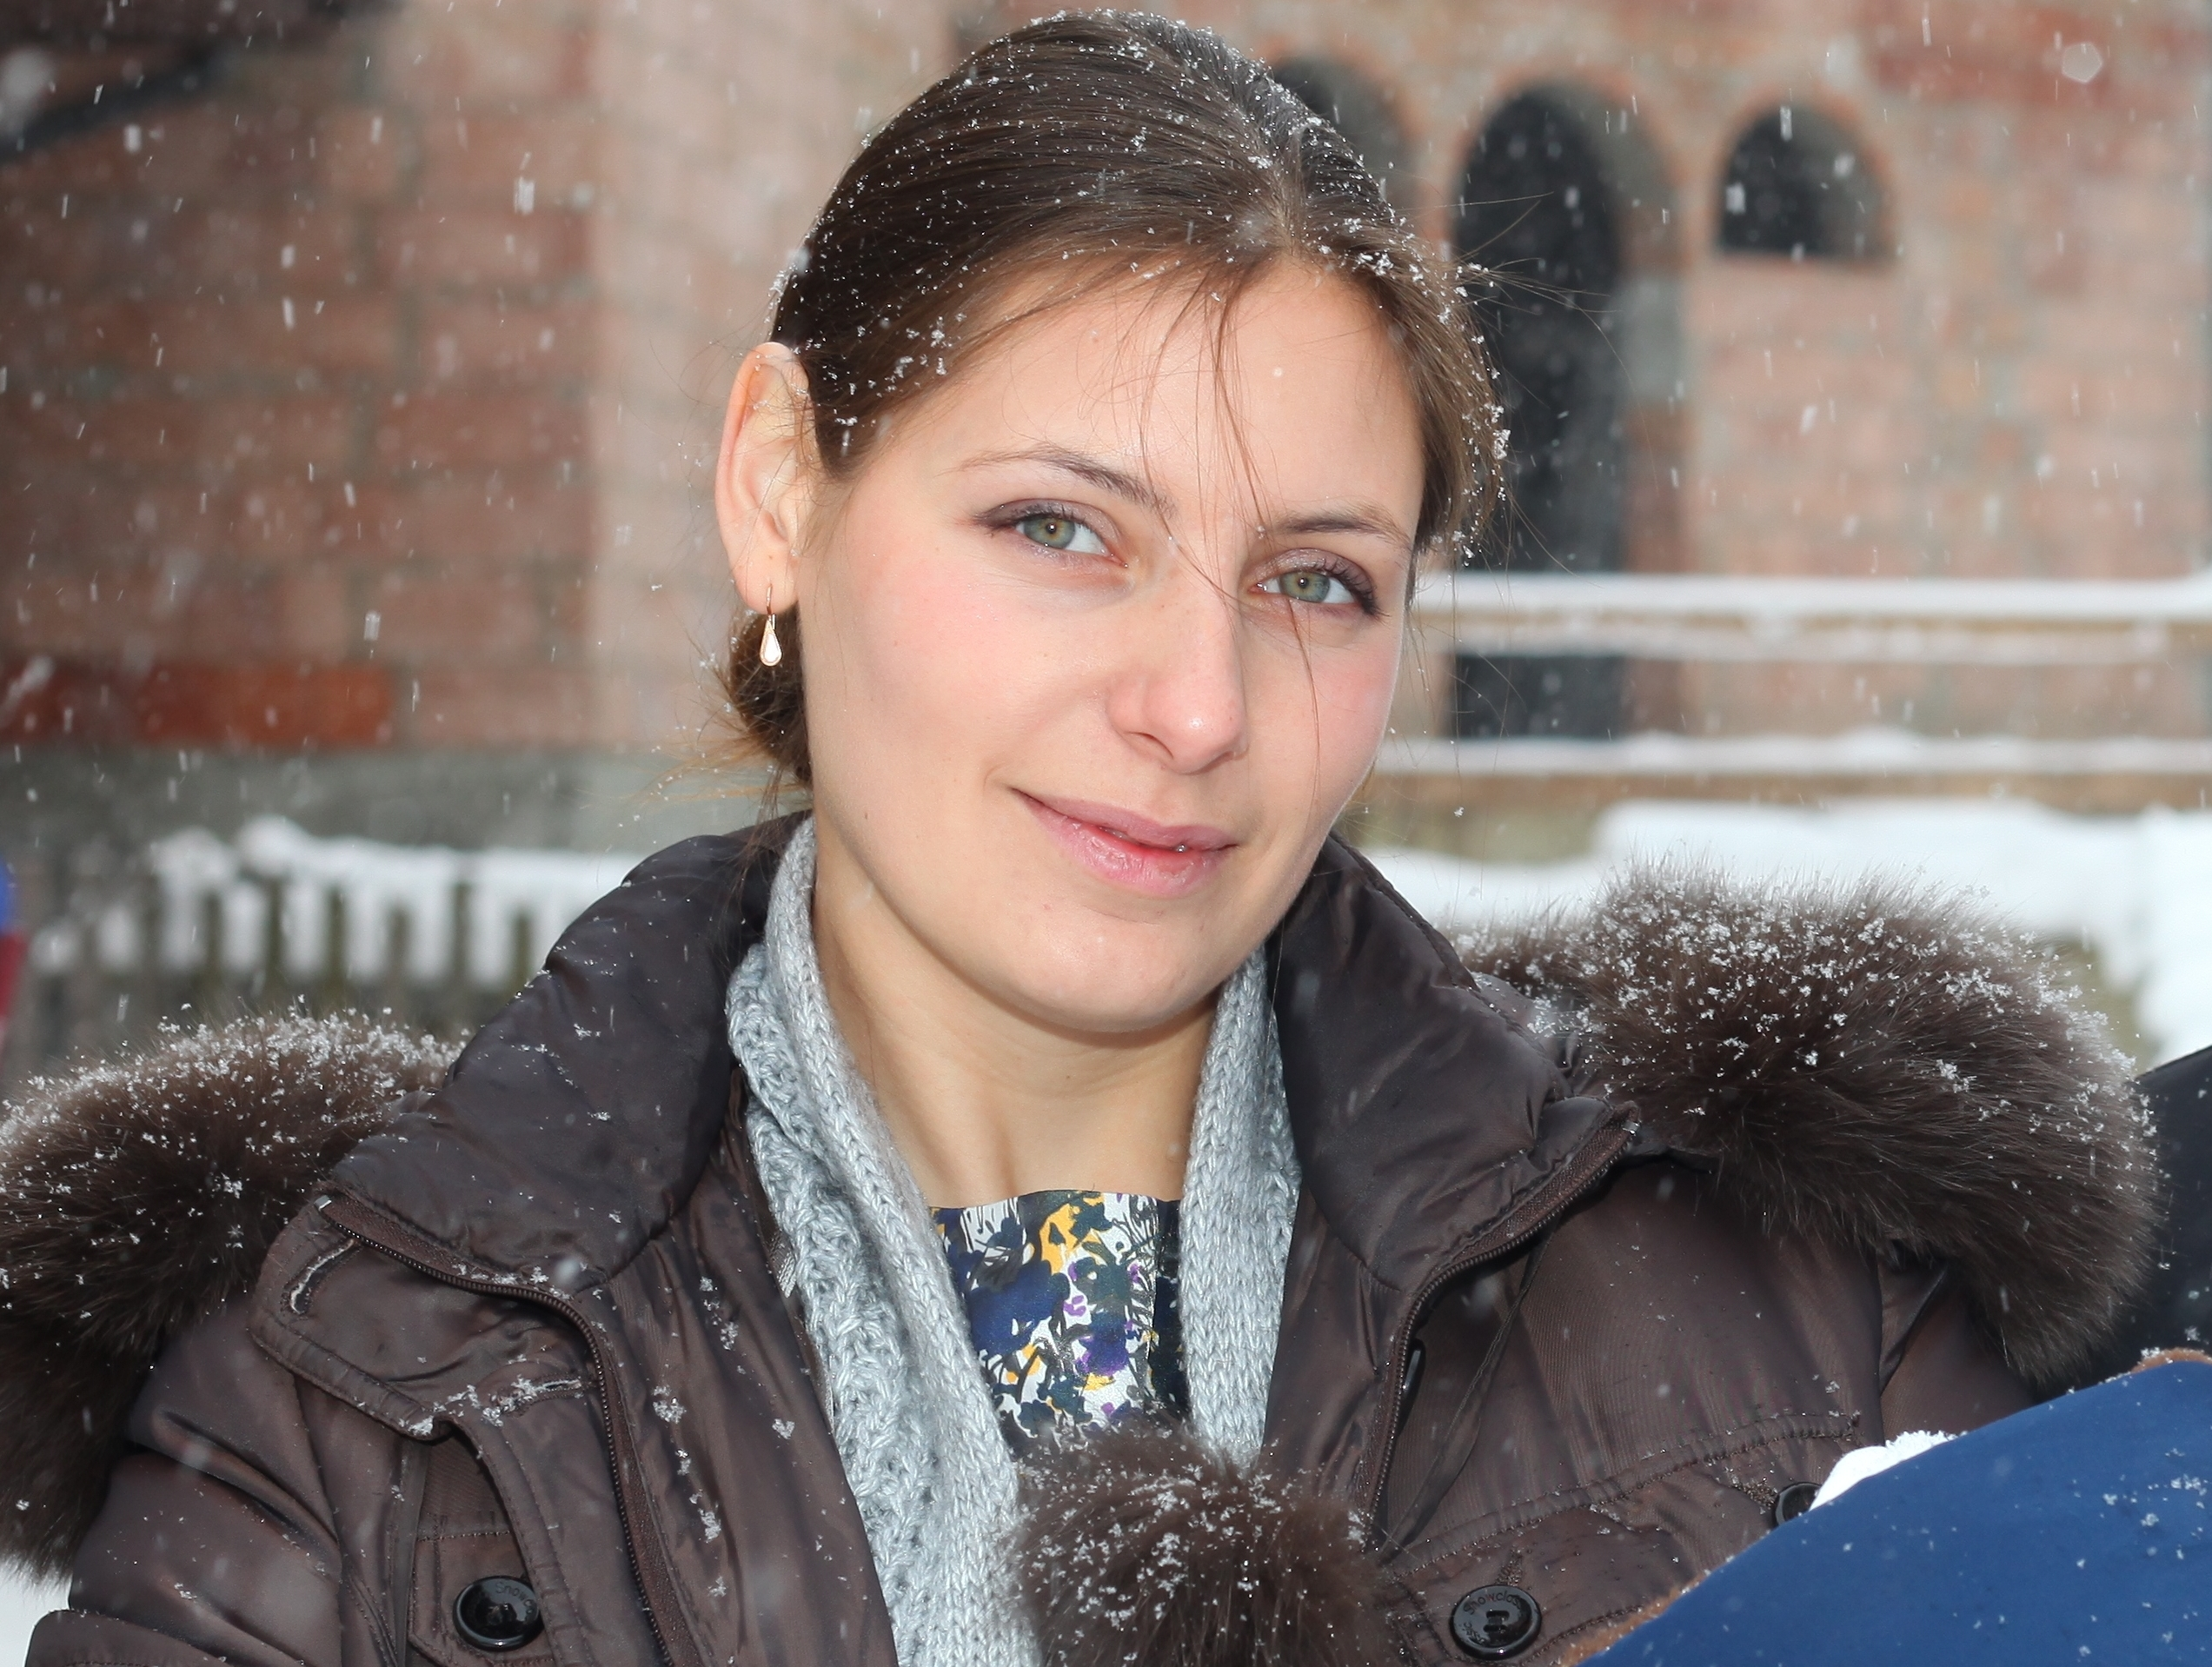 a beautiful Catholic godmother after the baptism of the baby, snowing, photo 7